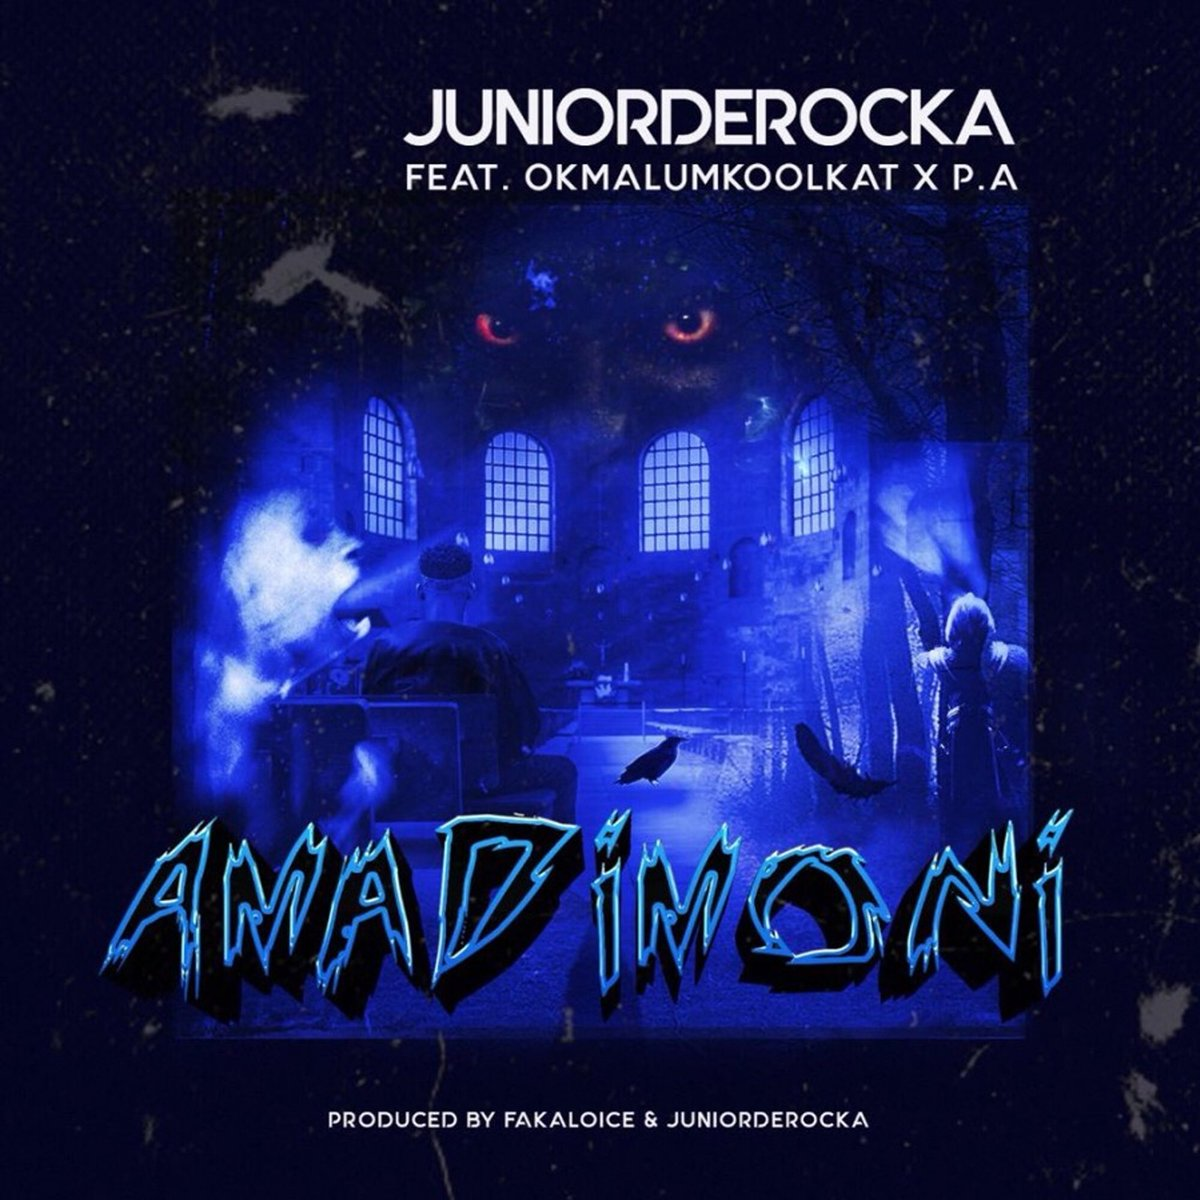 junior de rocka Junior De Rocka Drops New #AMADIMONI Single Ft. OkMalumKoolkat & P.A [Listen] DiiEr6kX0AAtv4E